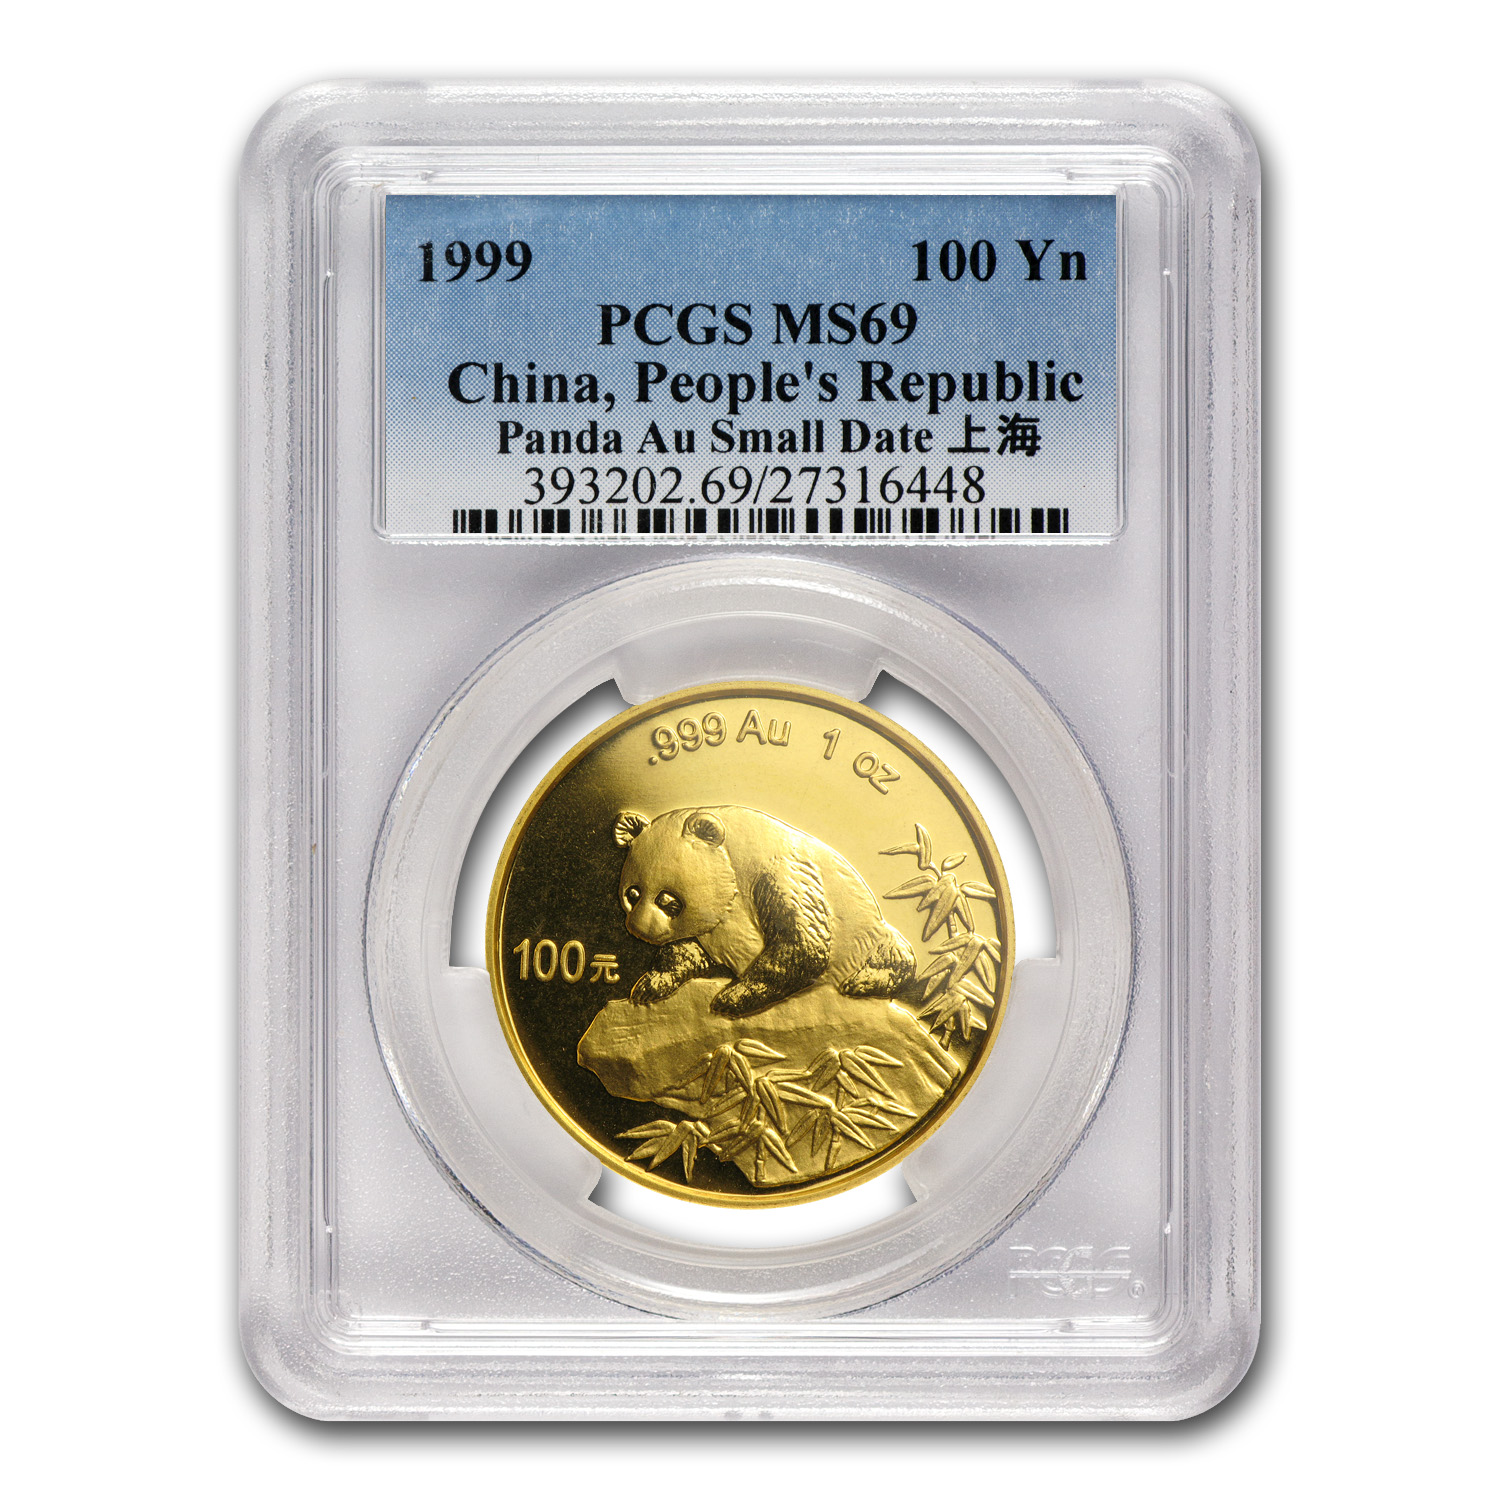 1999 1 oz Gold Chinese Panda MS-69 PCGS - Small Date